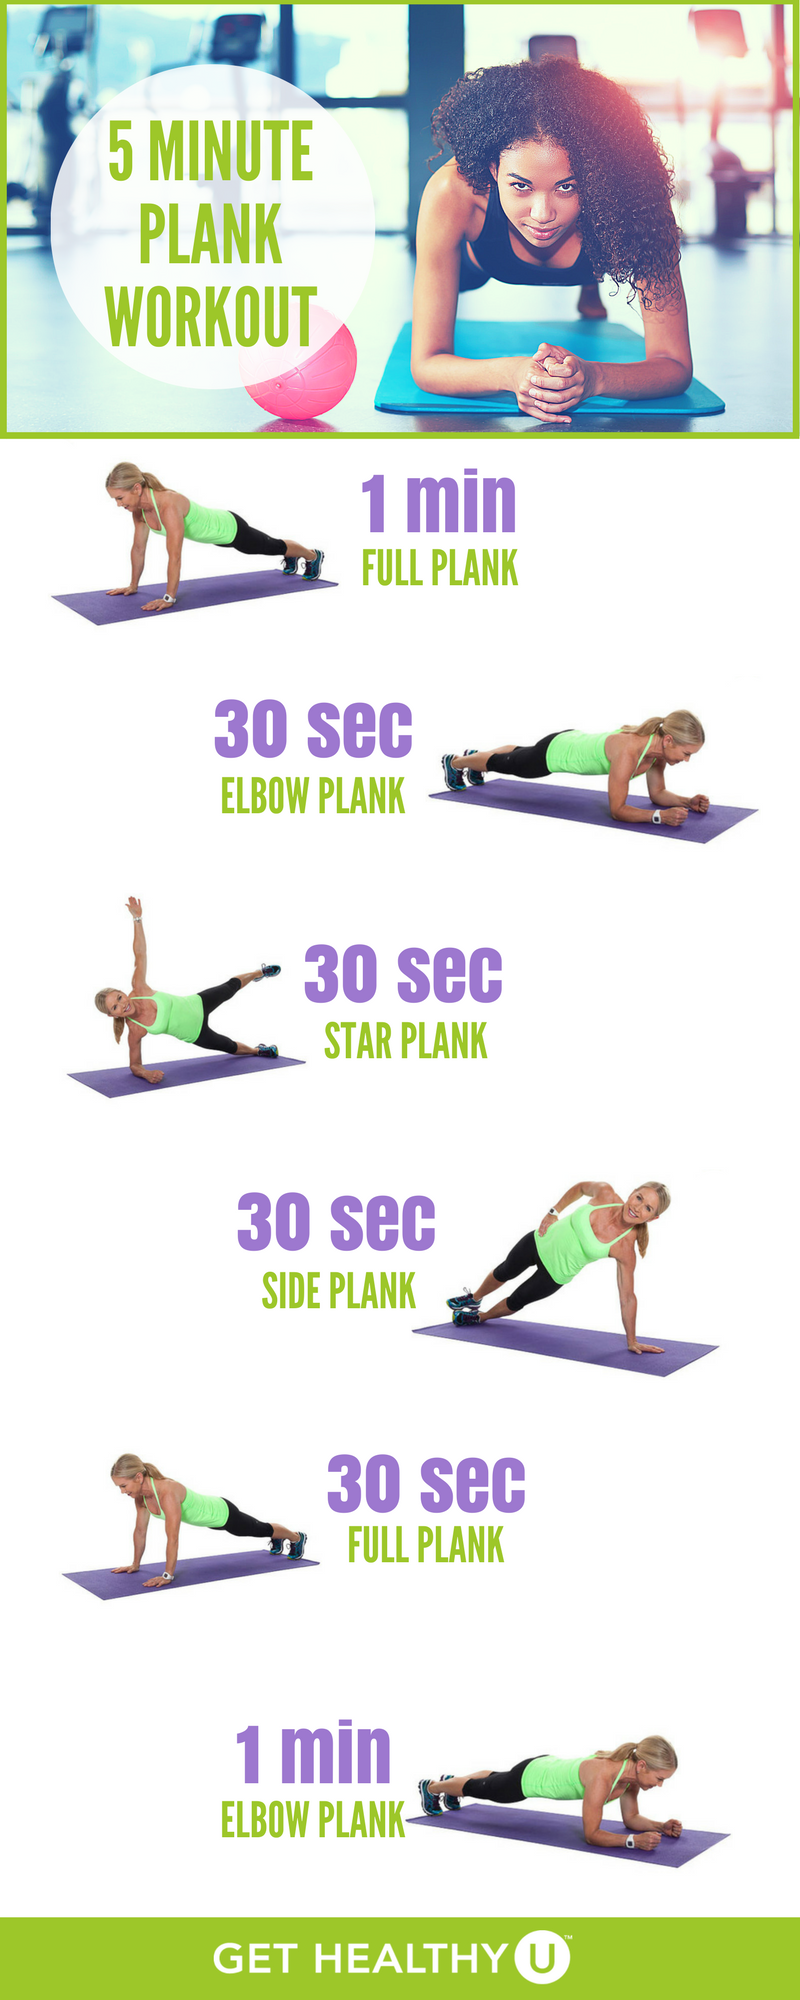 Try this 5 minute plank workout to strengthen up your core and create lean abs! Planks are the rockstar of abdominal work. If you are unclear about the many benefits of the plank or if you want to ace your form,  you might want to check out Perfecting Your Plank. Suffice it to say, the benefits of the abdominal plank are many! But now it's time to open your eyes to all the different variations the plank has to offer!